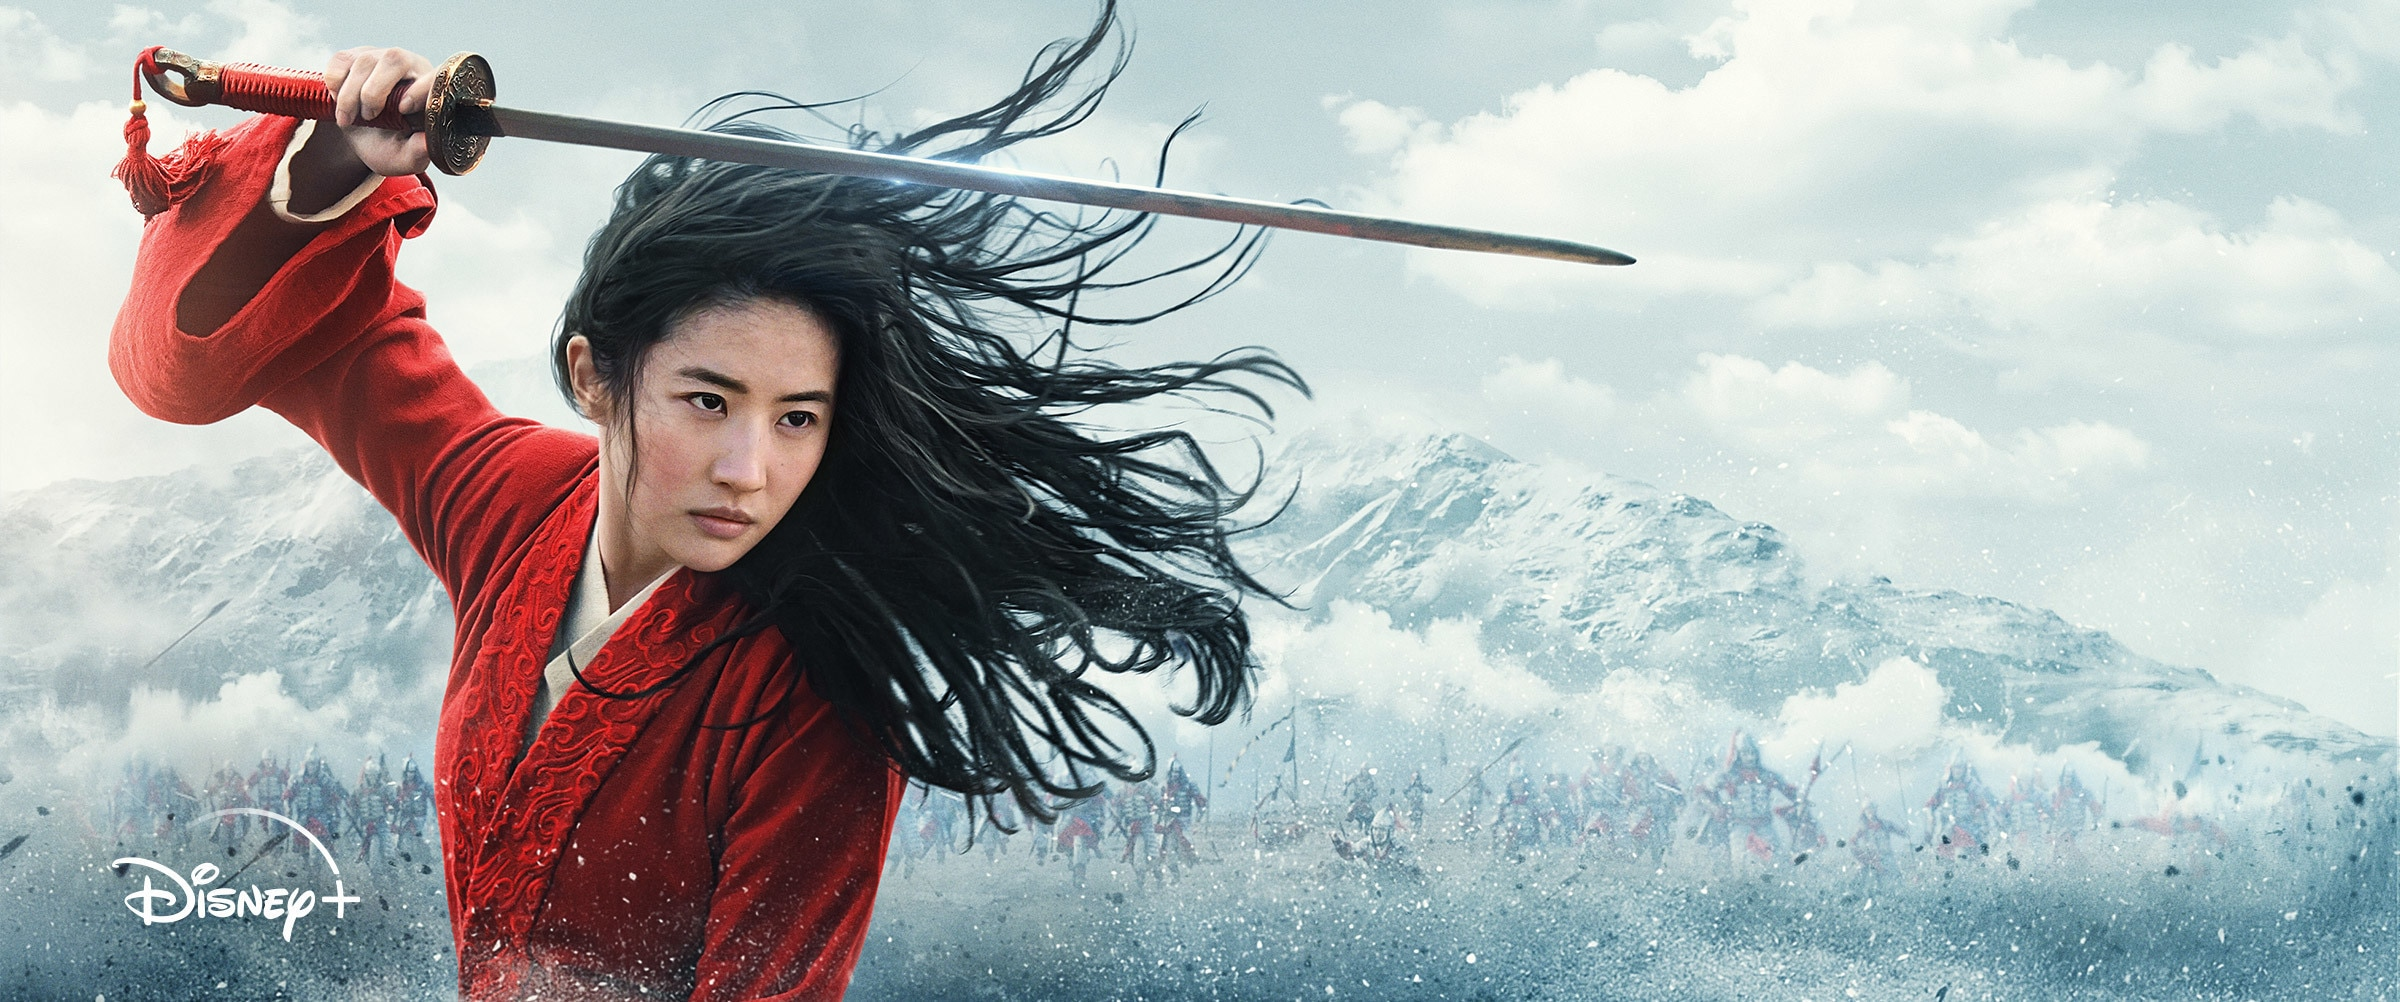 Mulan - Disney+- Payoff - Hero - Sign Up & Stream